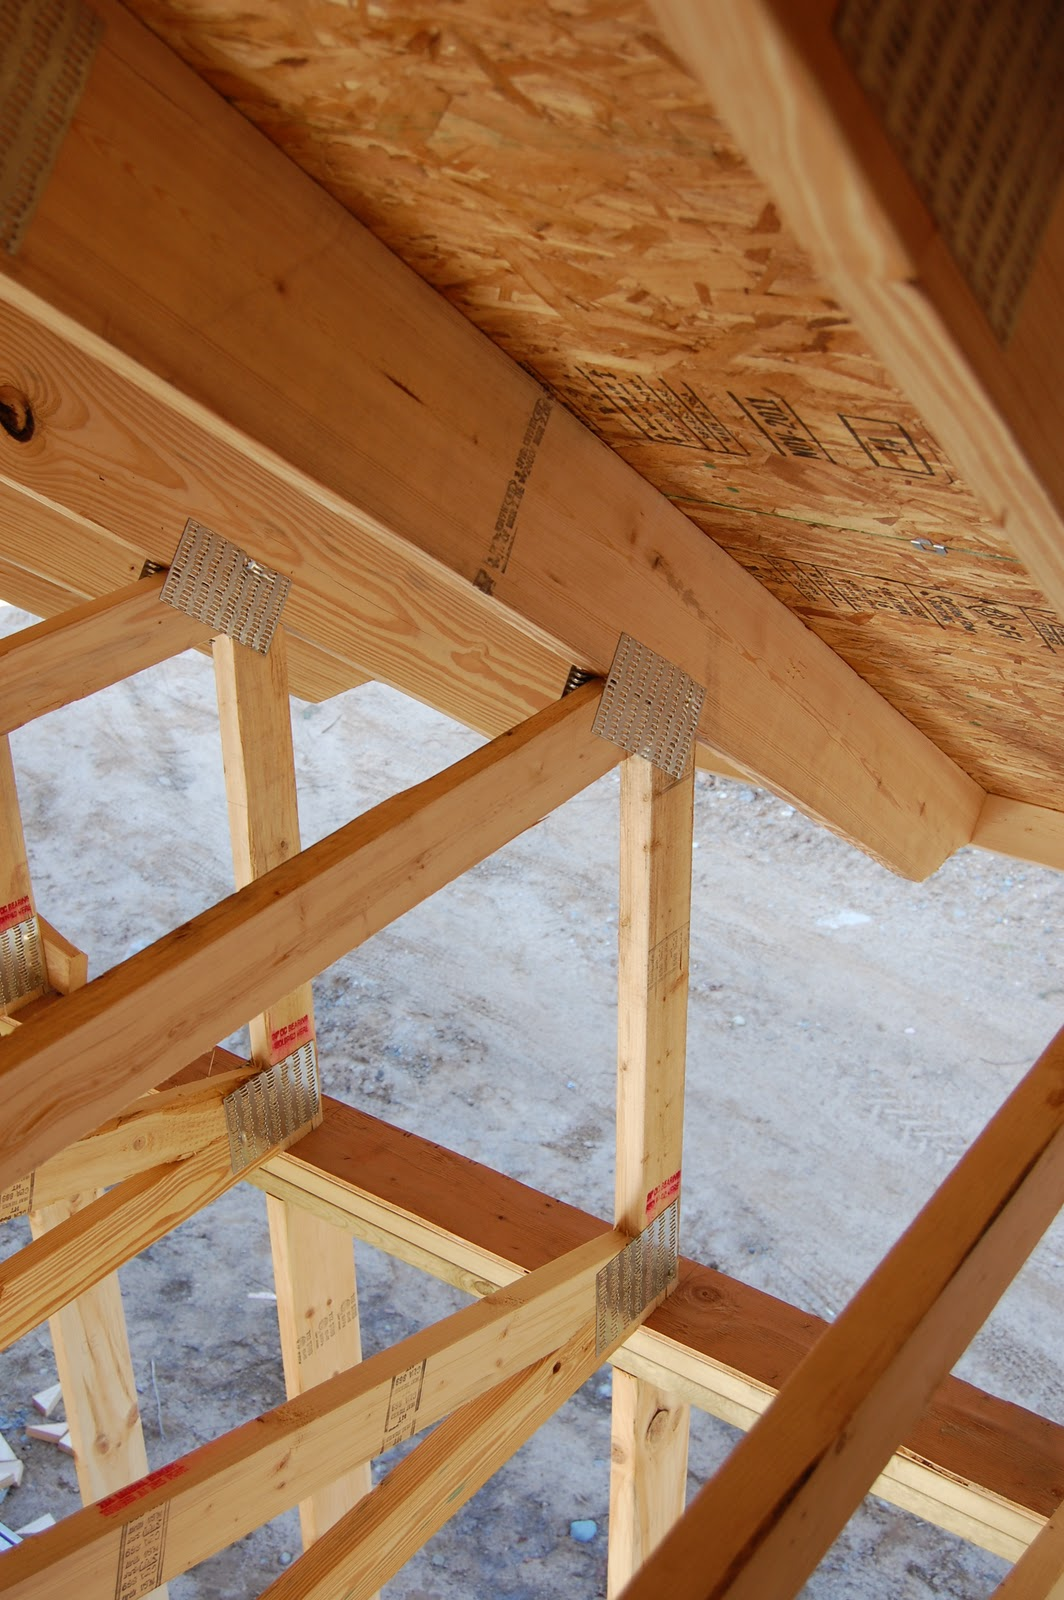 Room In Attic Truss Design: The Sumac Grove: Ready For The Roofer